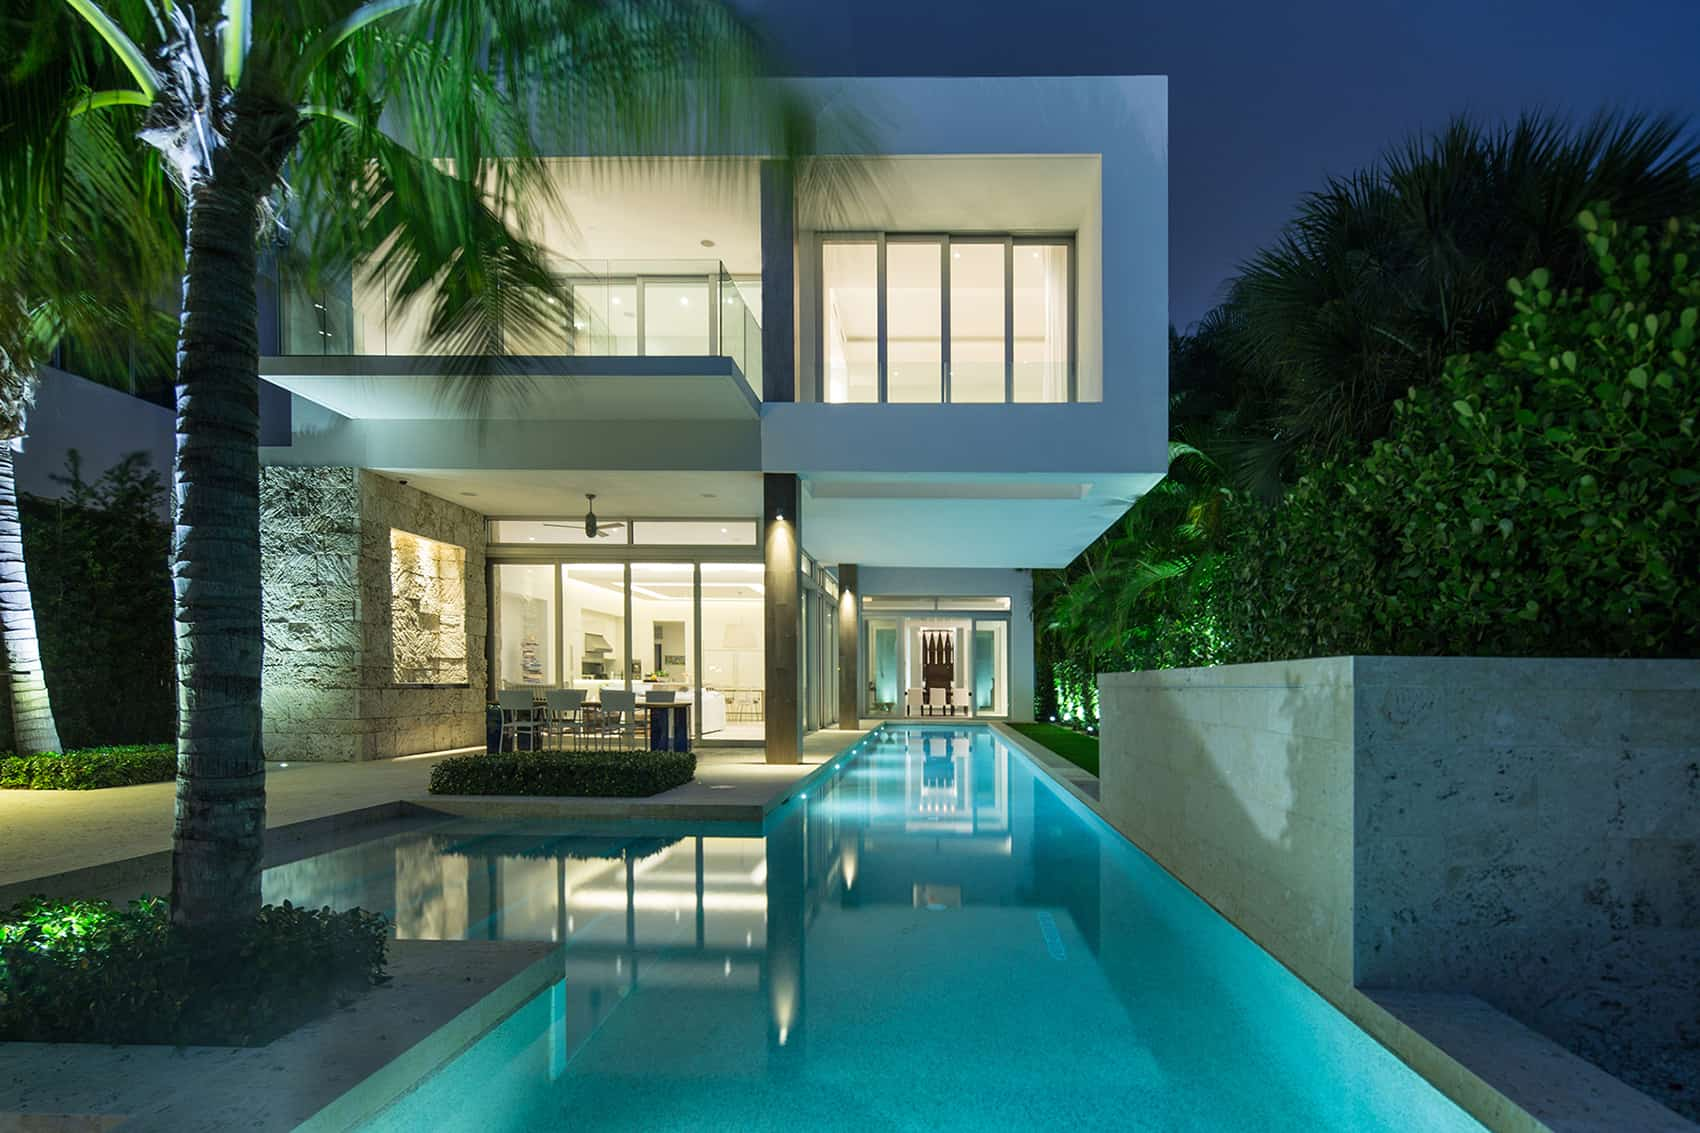 Biscayne Bay Residence-Strang Architecture-01-1 Kindesign